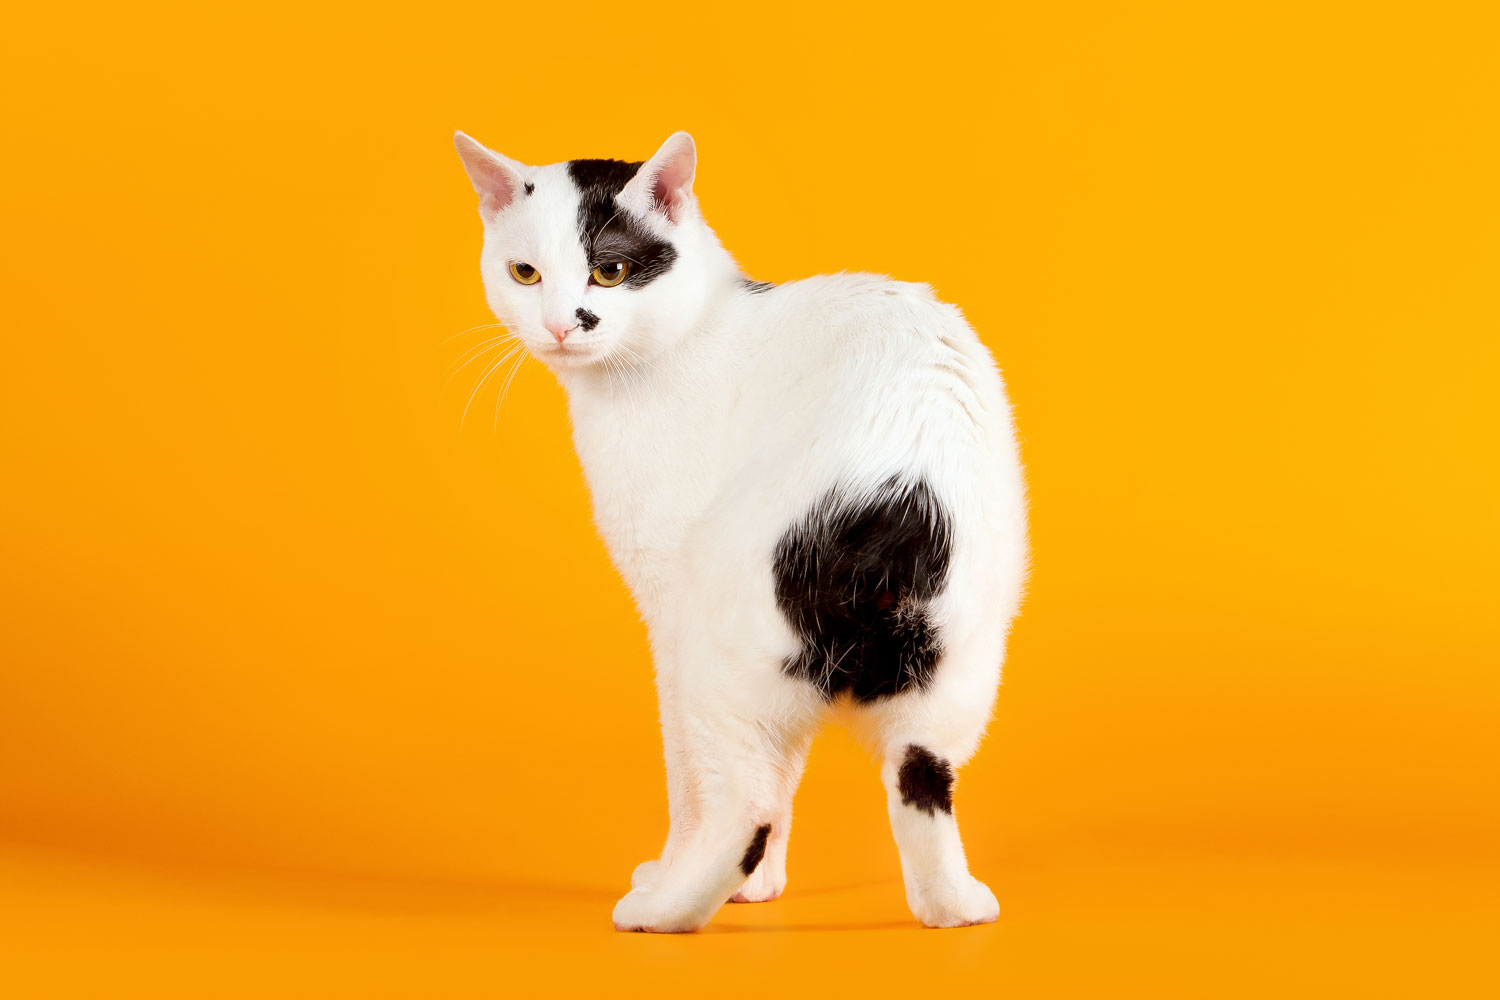 A Fierce white and black colored Japanese bobtail on an orange background